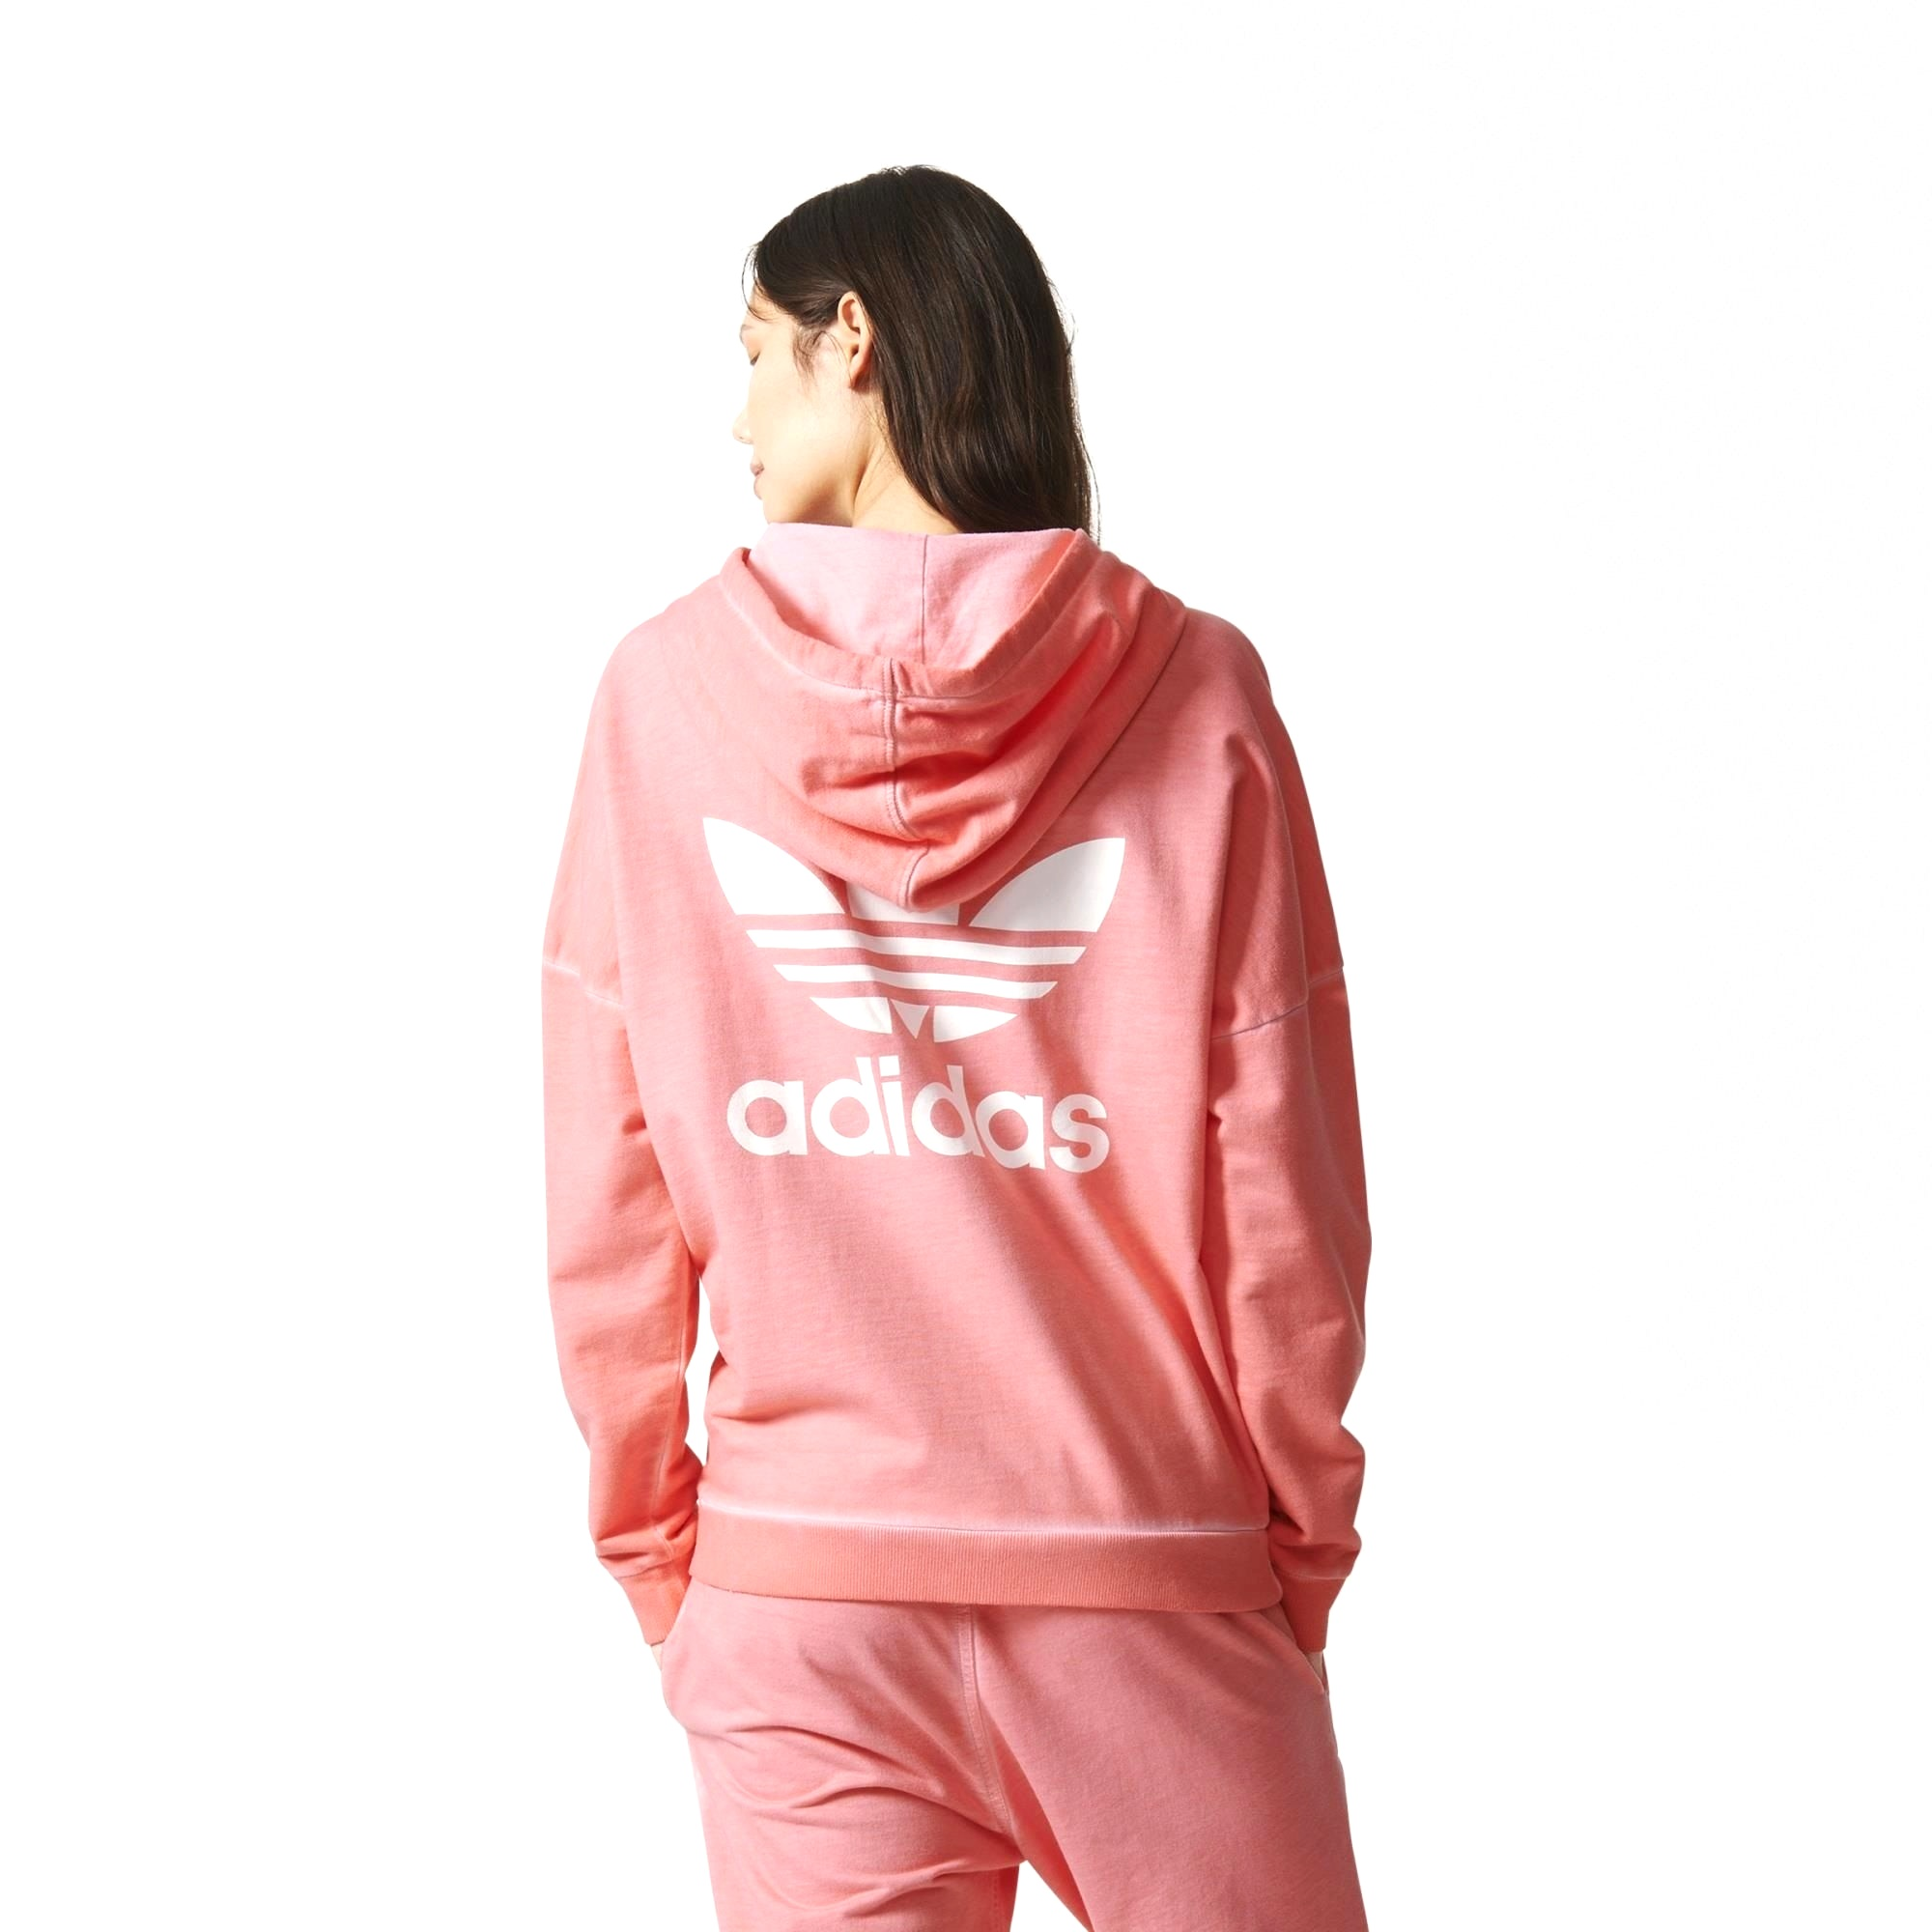 Buy this Premium Essentials hoodie in pink from Adidas here